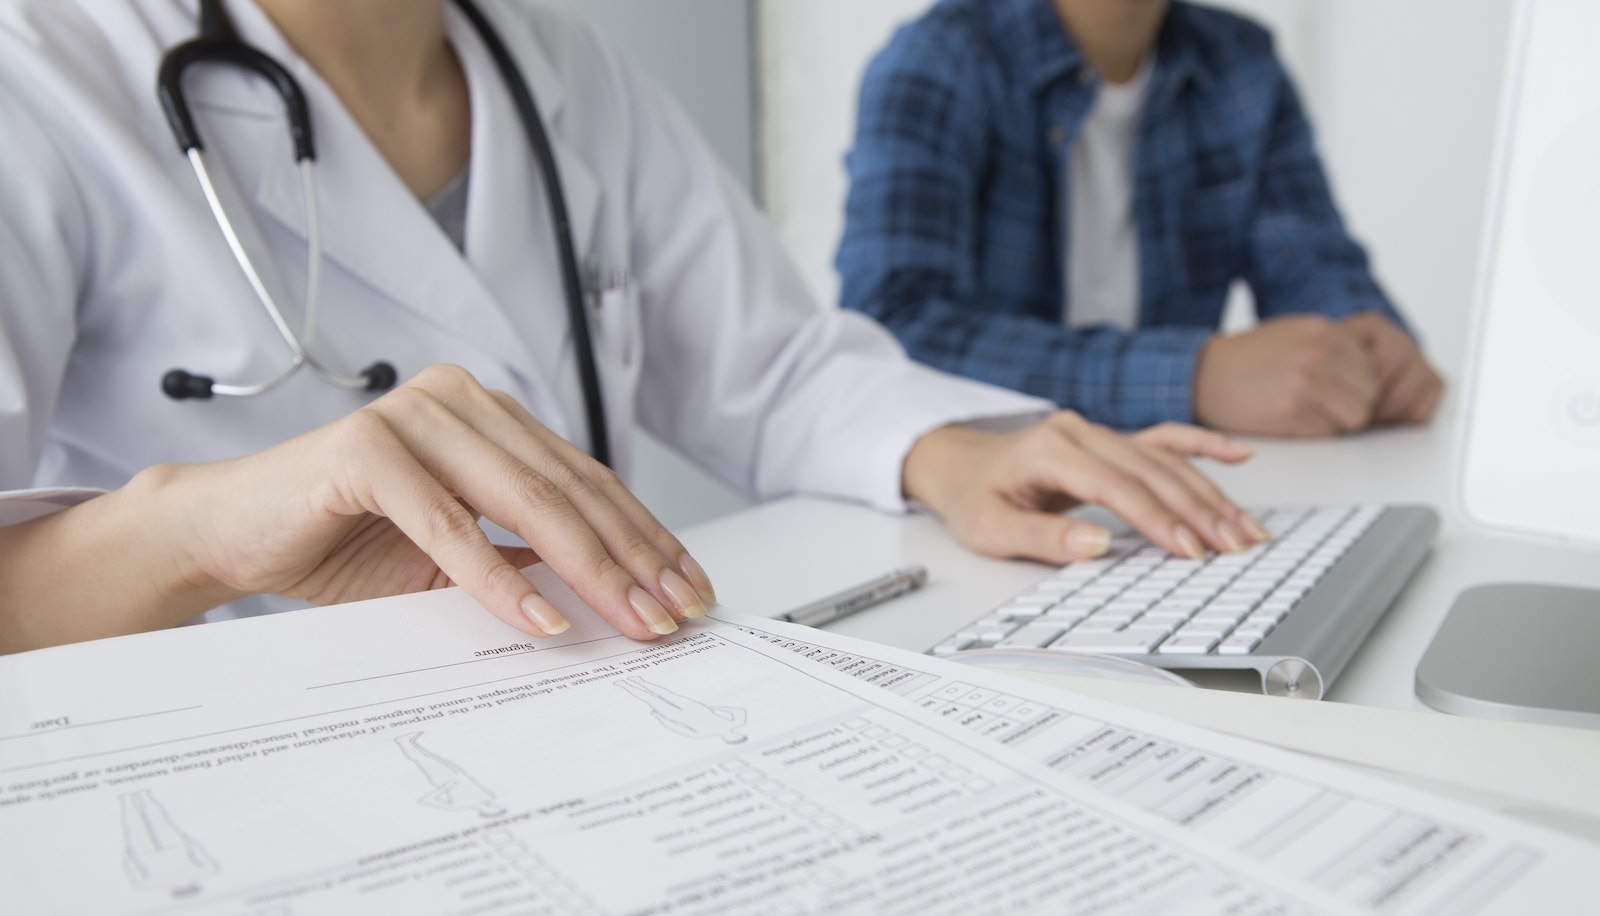 Medical Record Papers Cropped